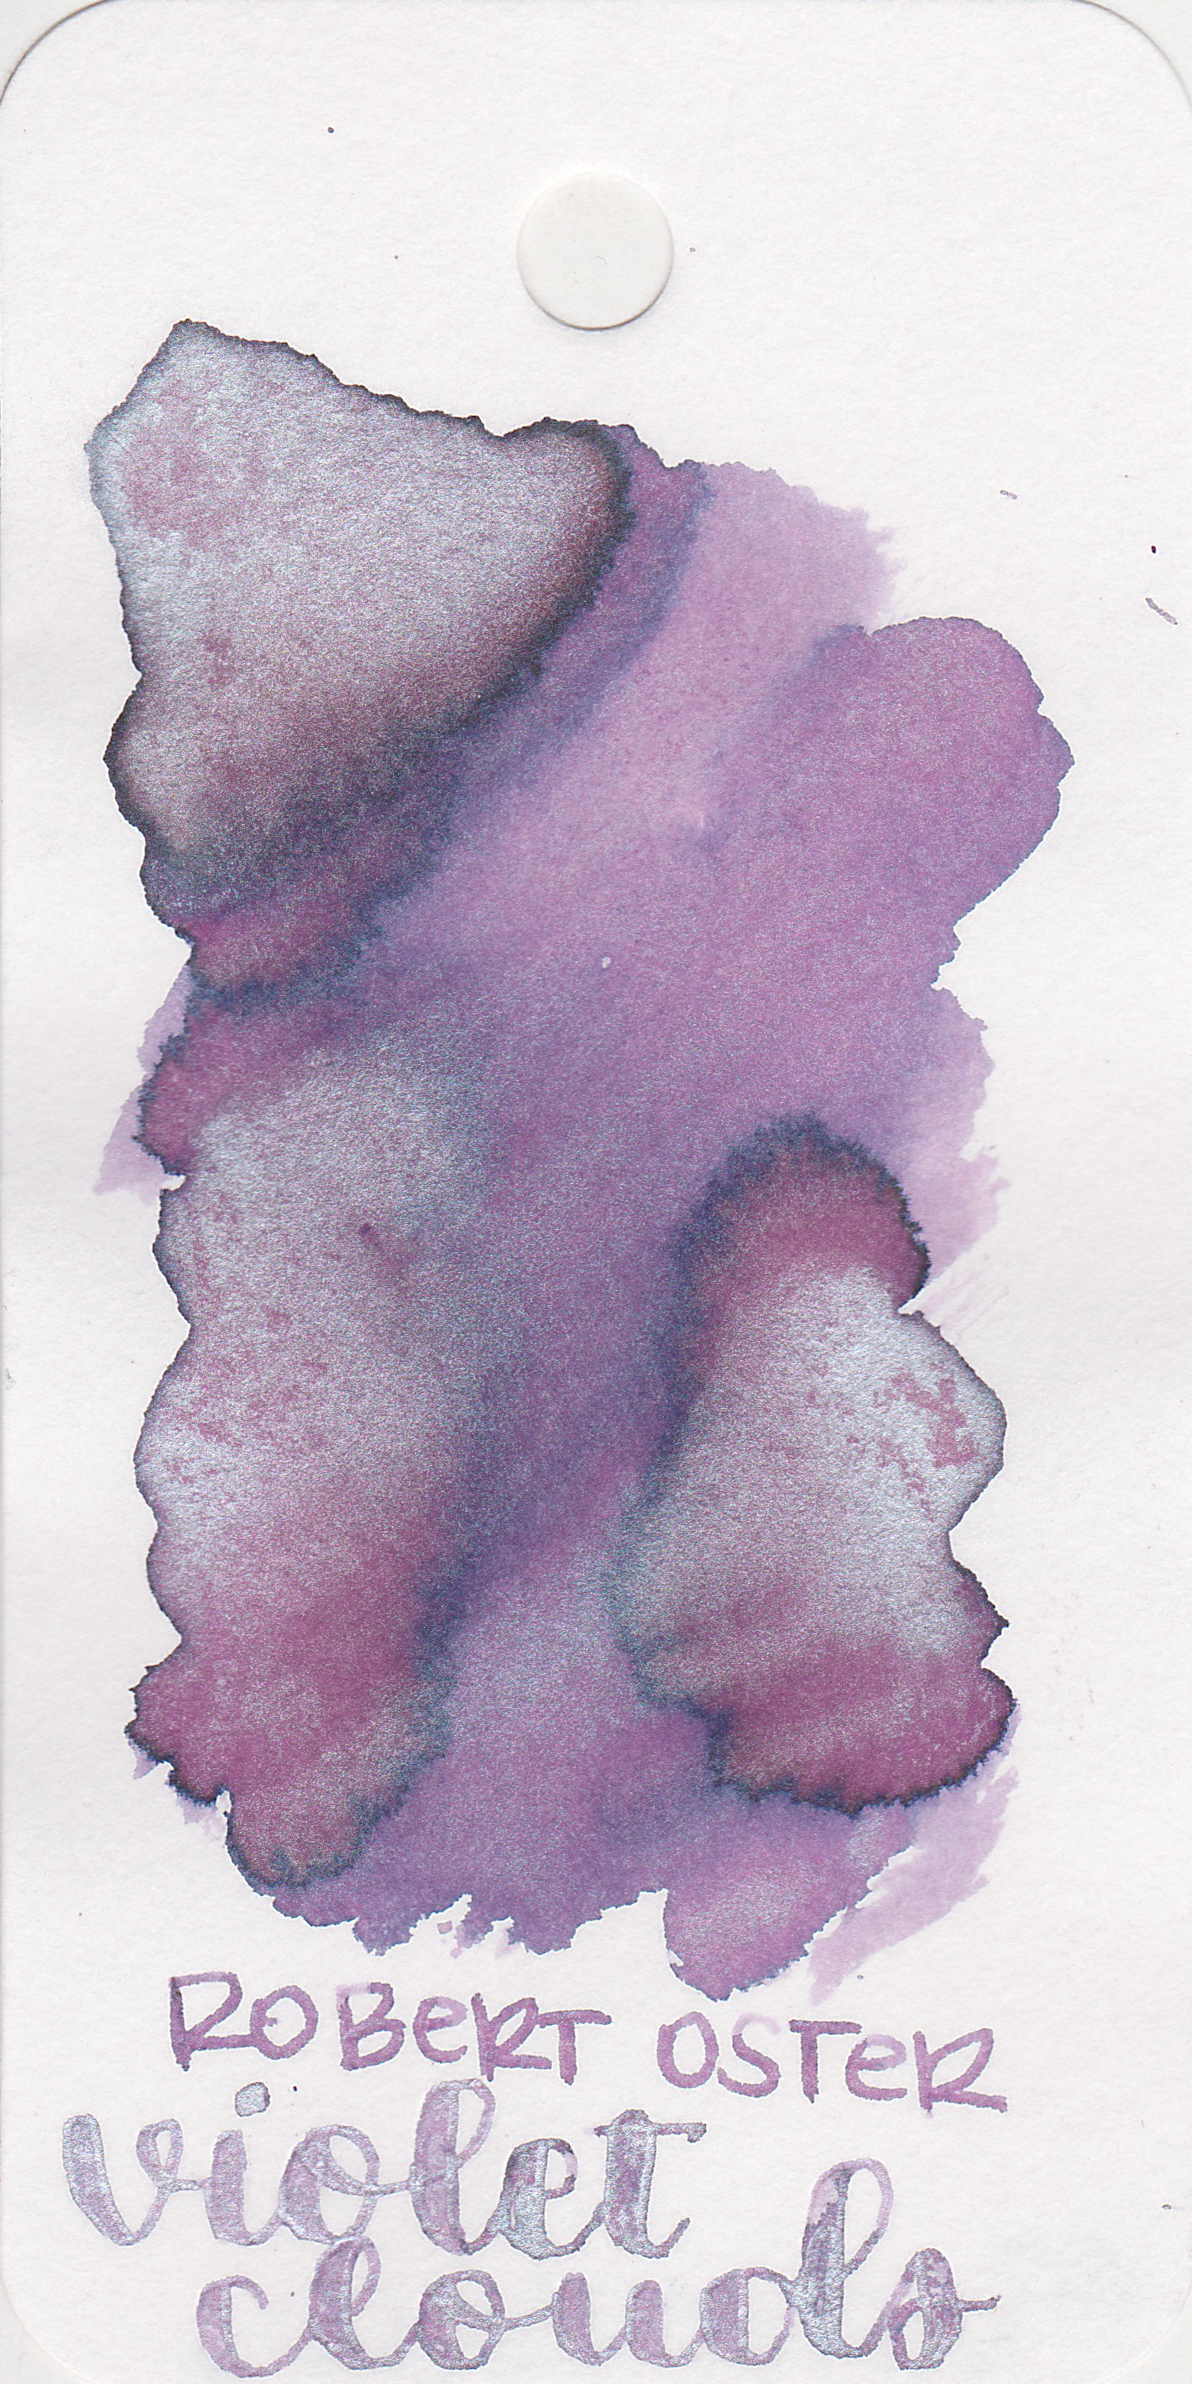 The color: - Violet Clouds is a light purple with lots of shimmer. I think this ink would be lovely to use for spring, especially around Easter time.